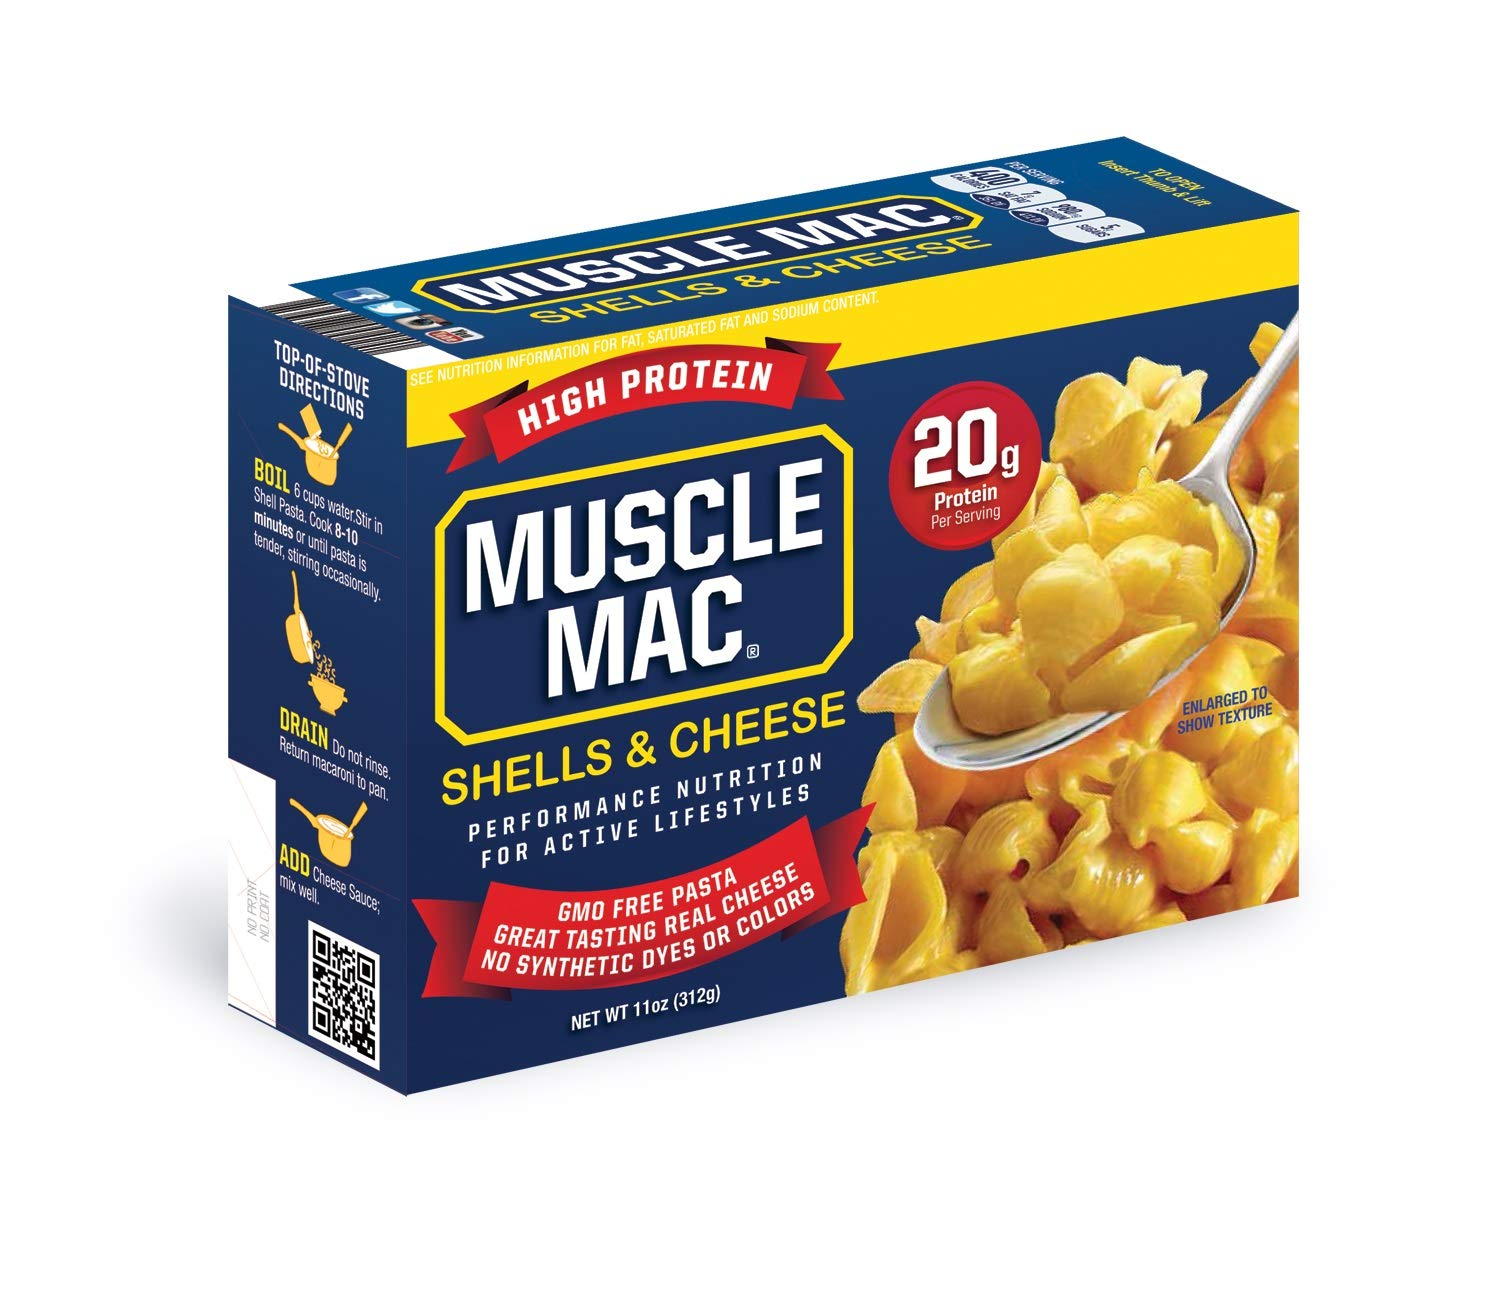 Muscle Mac | Shells & Cheese Pasta For All Ages, 20 Grams Of Protein Per Serving And Real Cheese, 12 PACK by